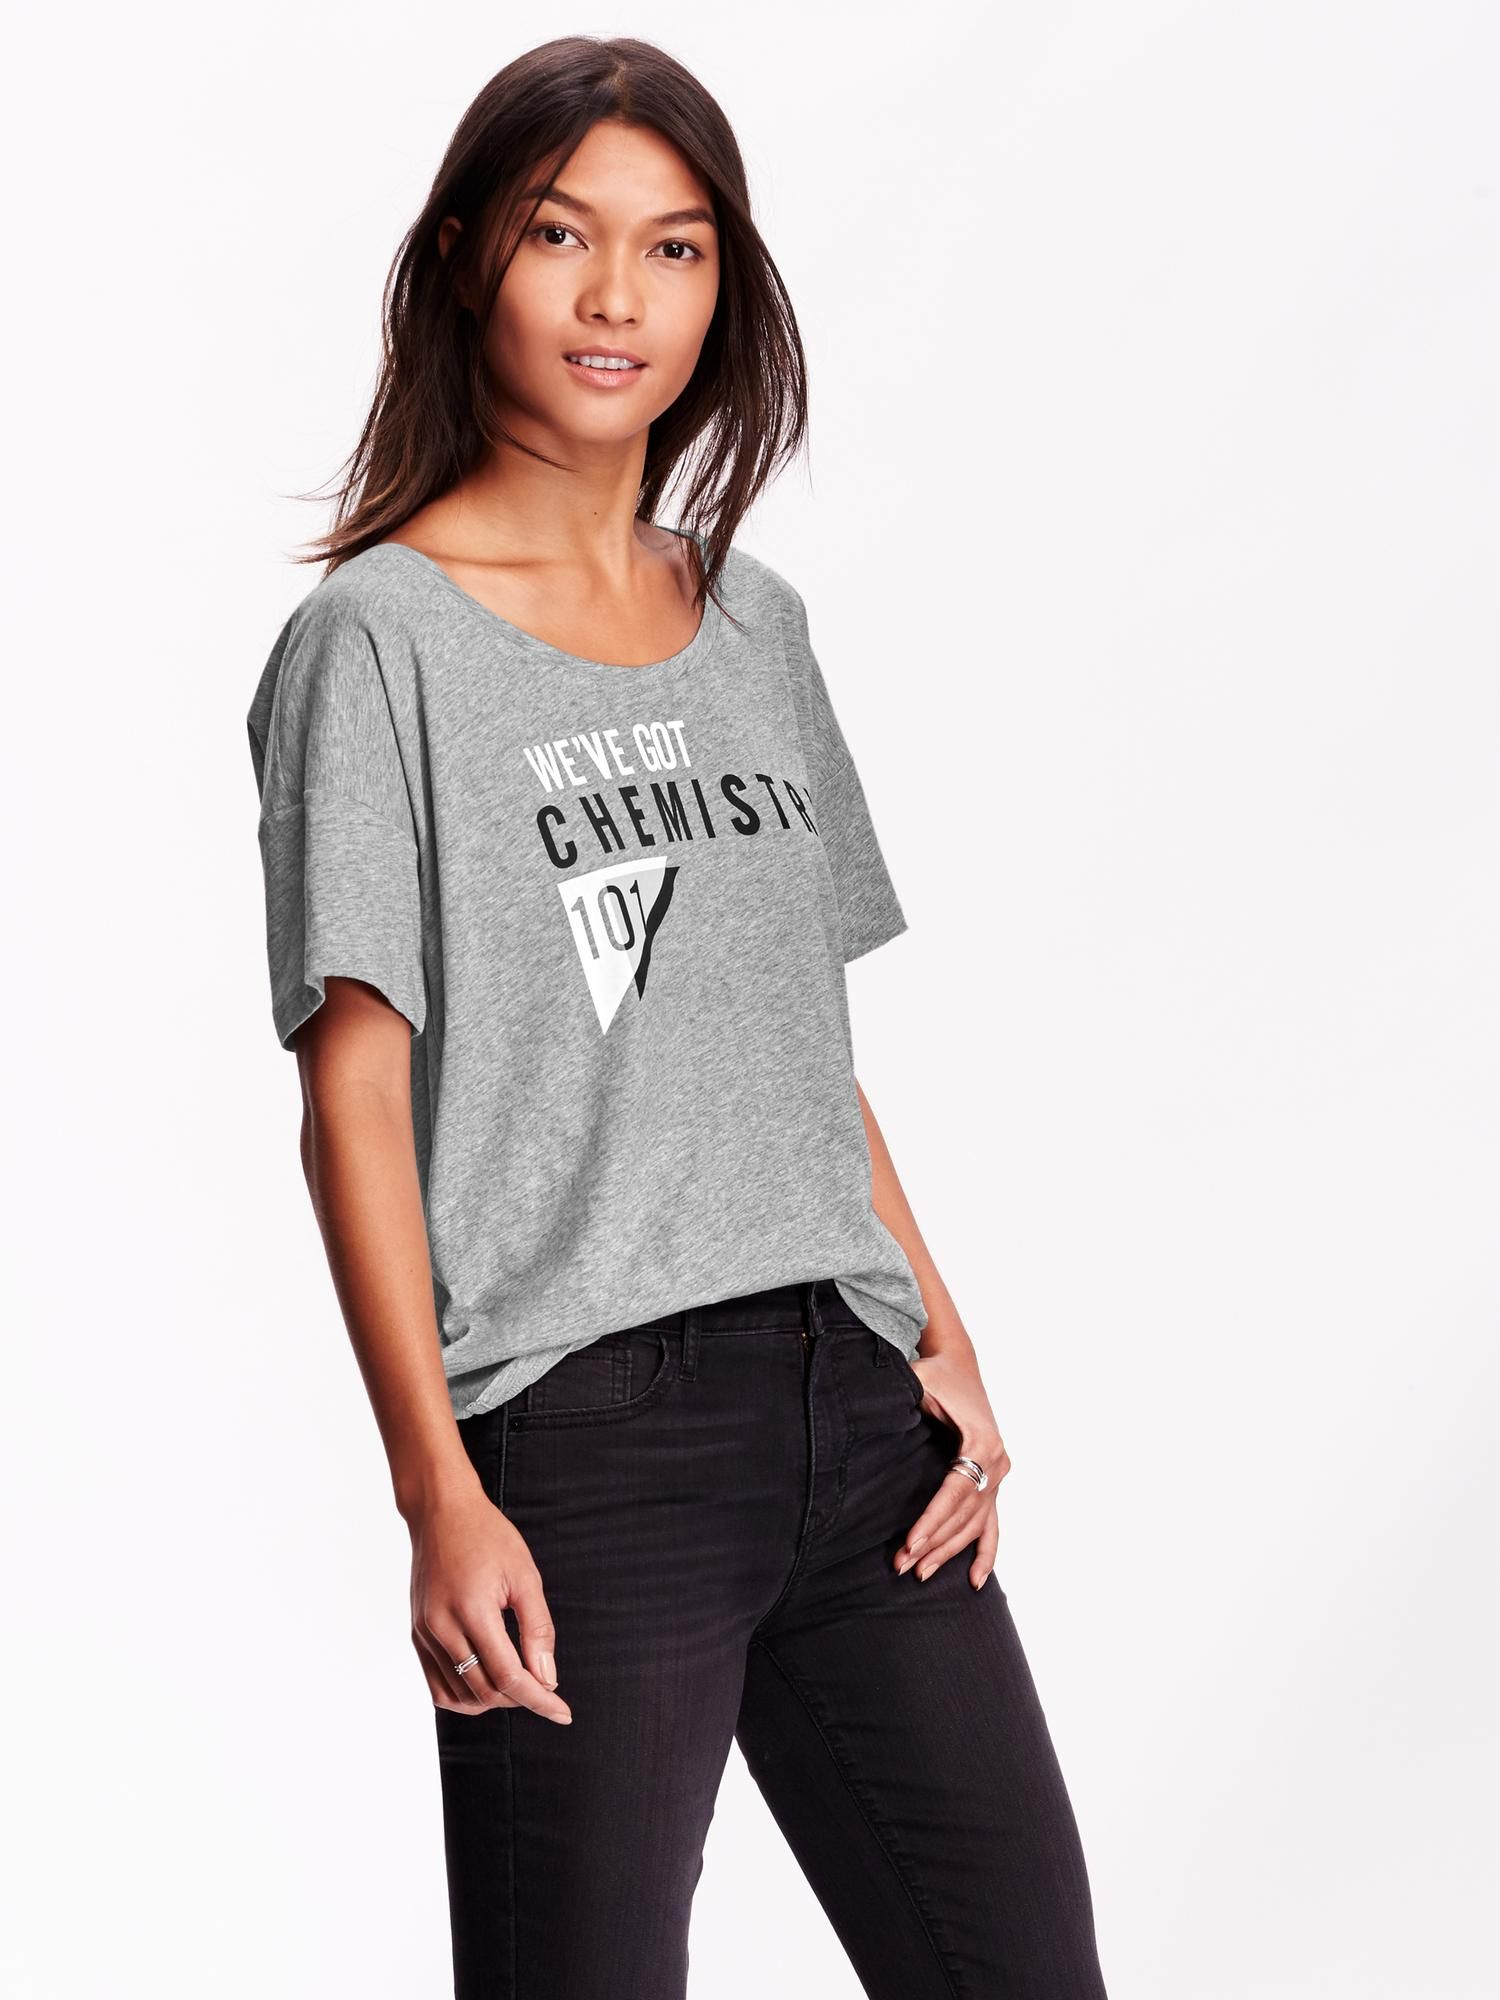 1d82ea0ad7851 We've Got Chemistry 101 T-shirt Old Navy | Outfits | Women, T shirts ...